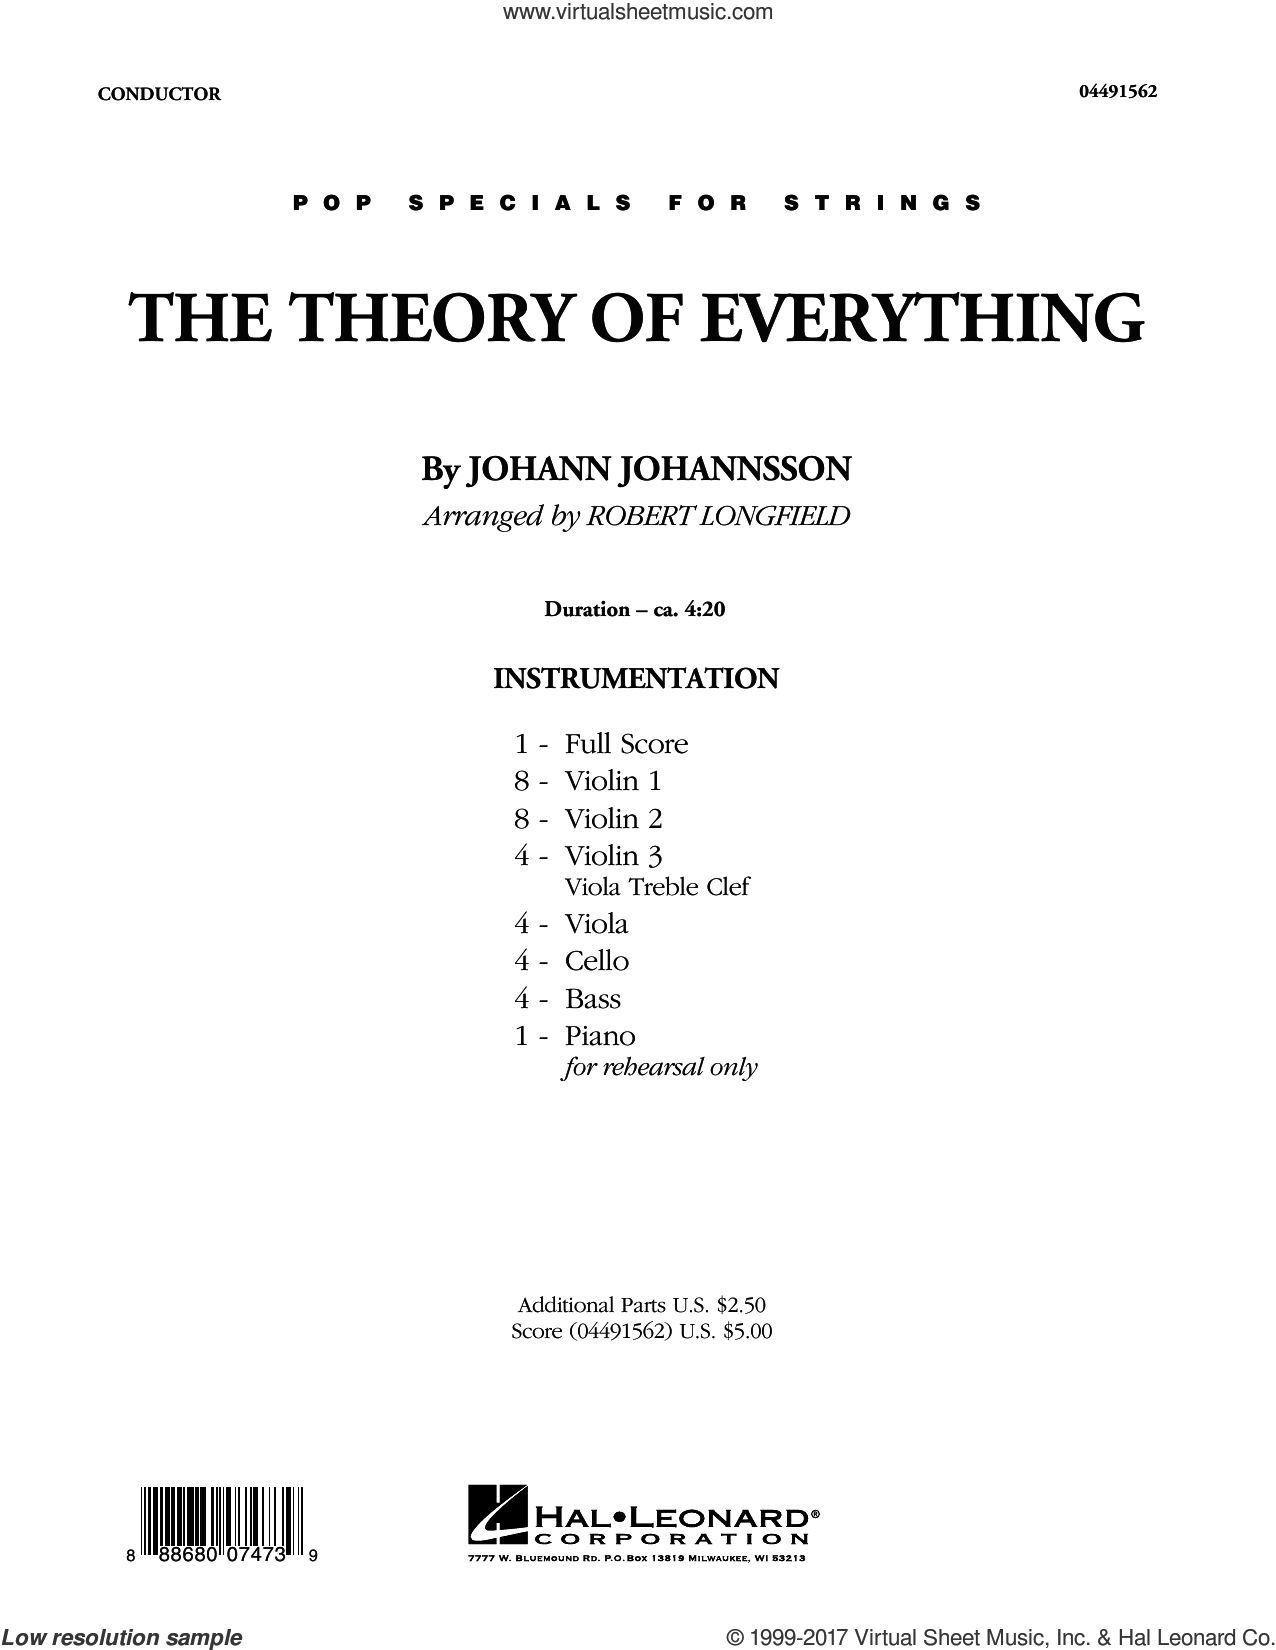 The Theory of Everything (COMPLETE) sheet music for orchestra by Robert Longfield and Johann Johannsson, classical score, intermediate